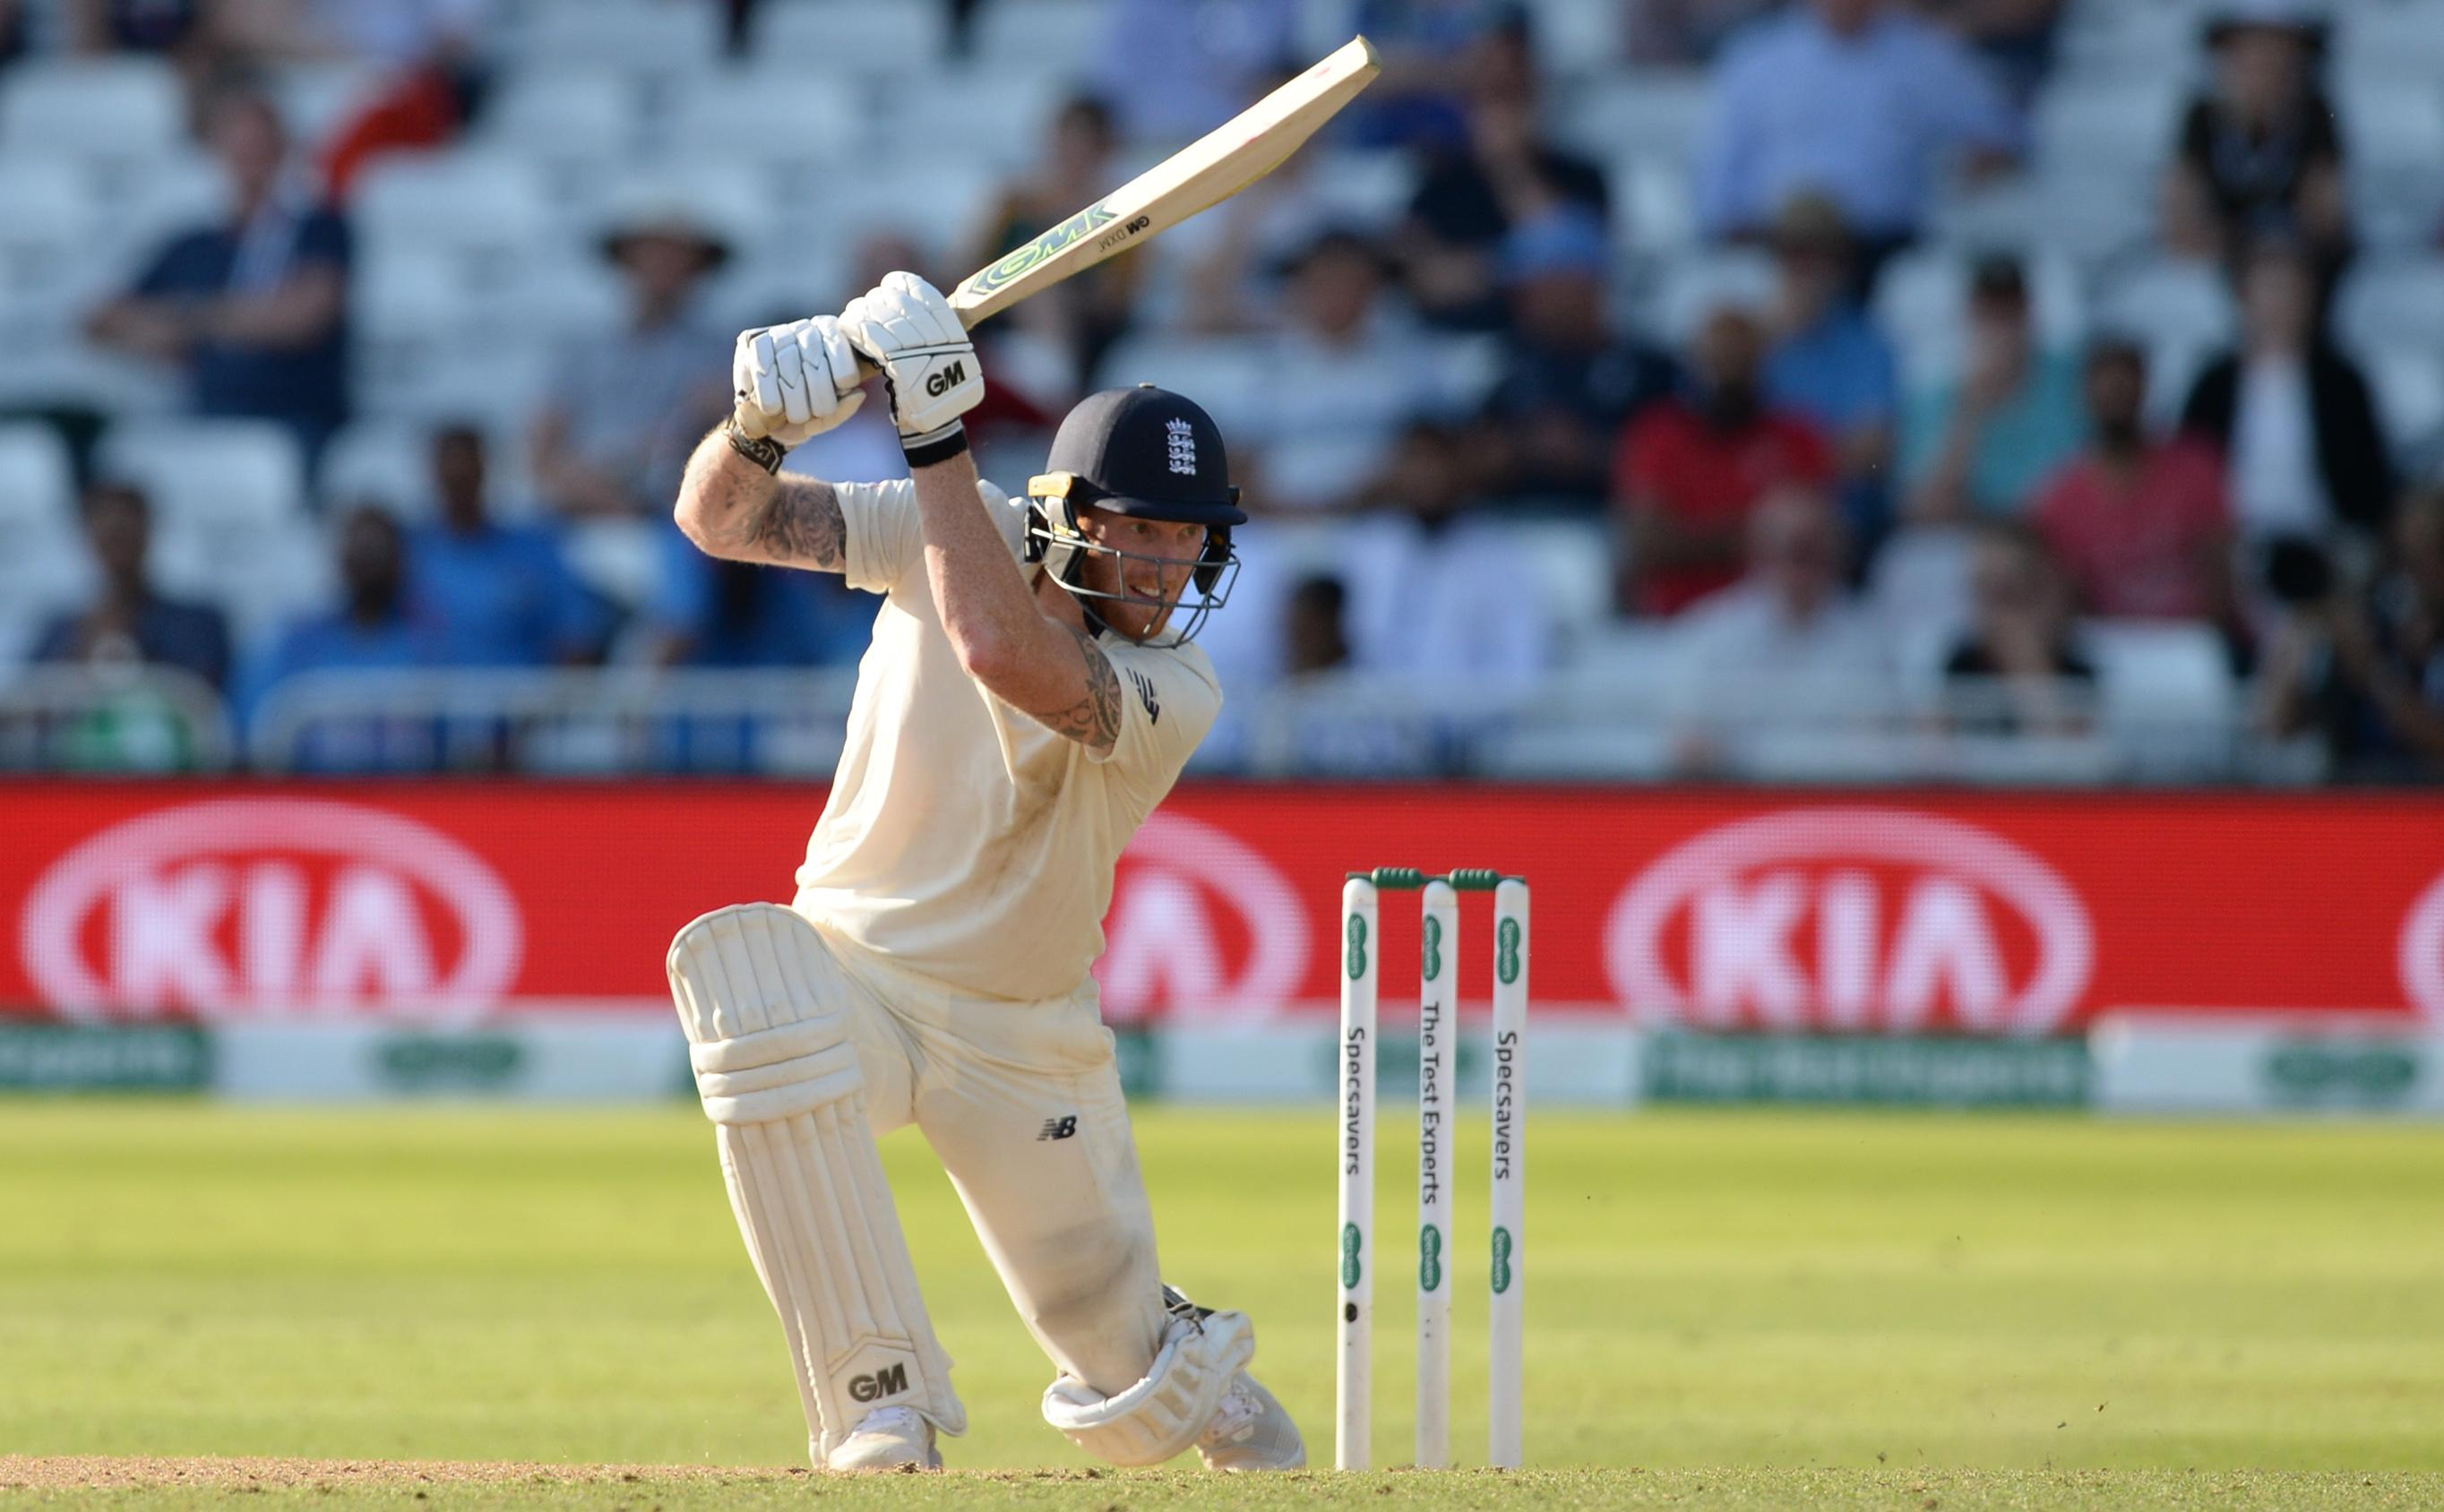 The all-rounder played well in the Third Test despite England's struggles